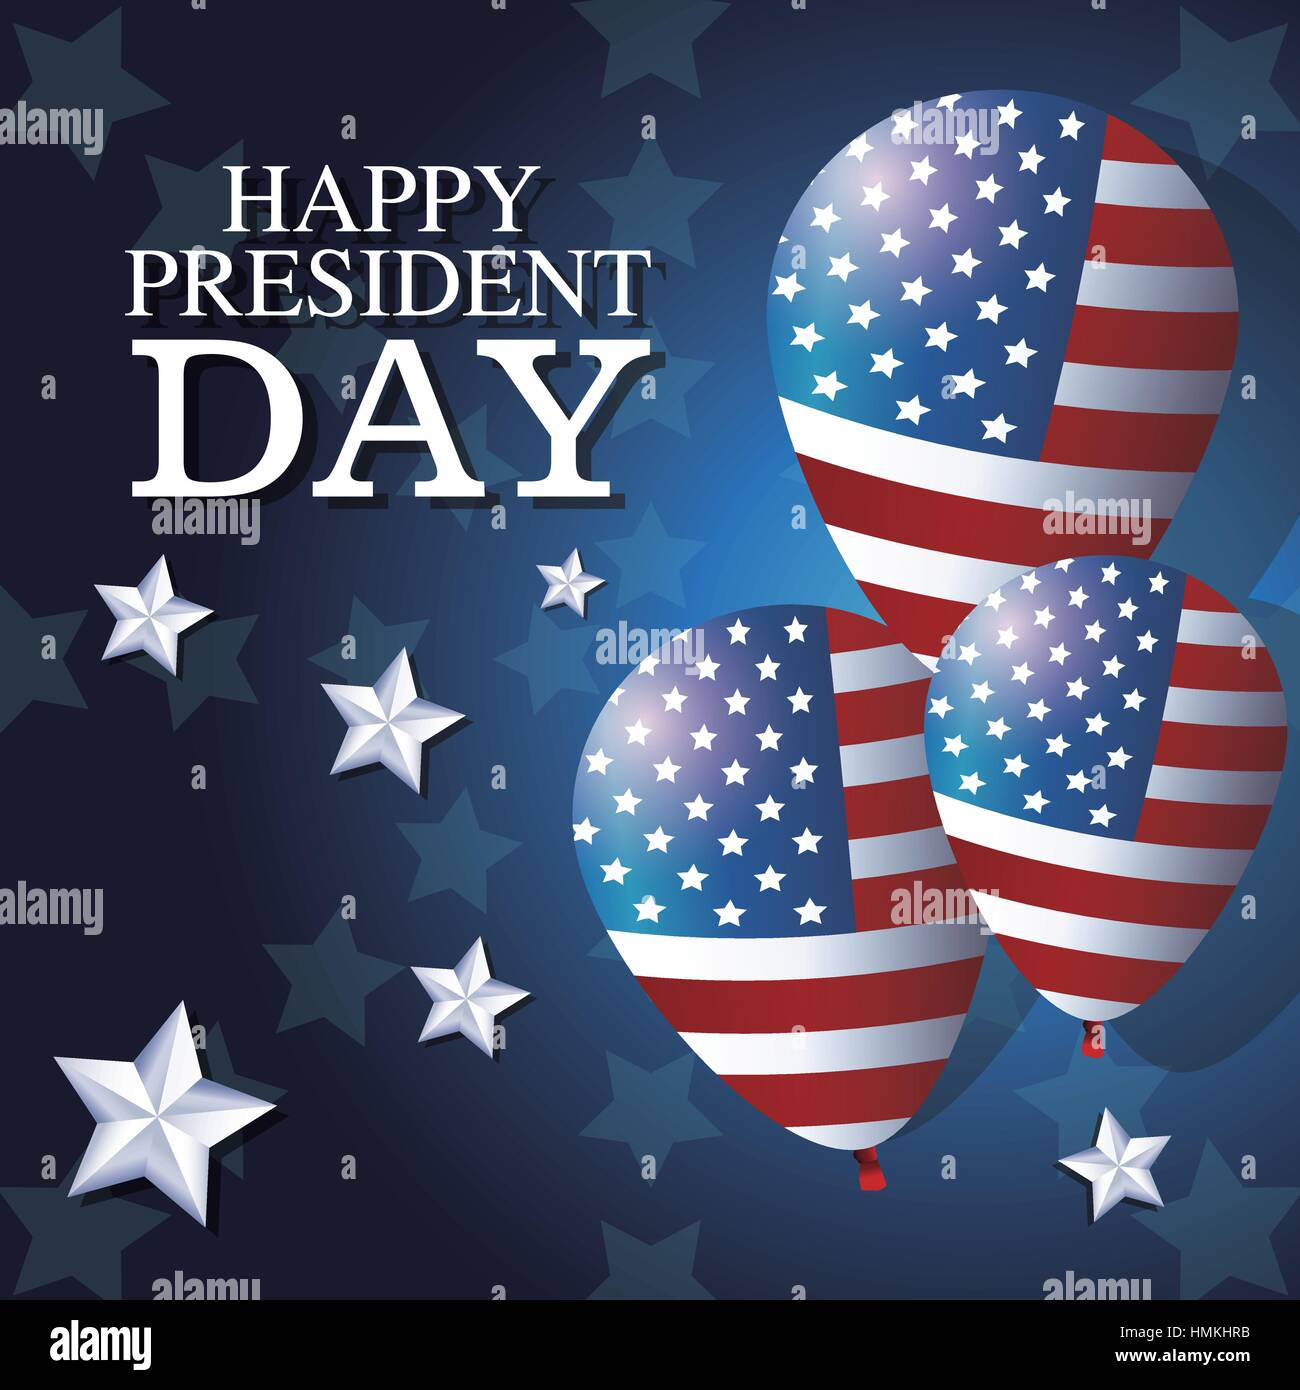 f9169f37d85 happy president day balloons flag star background Stock Vector Art ...